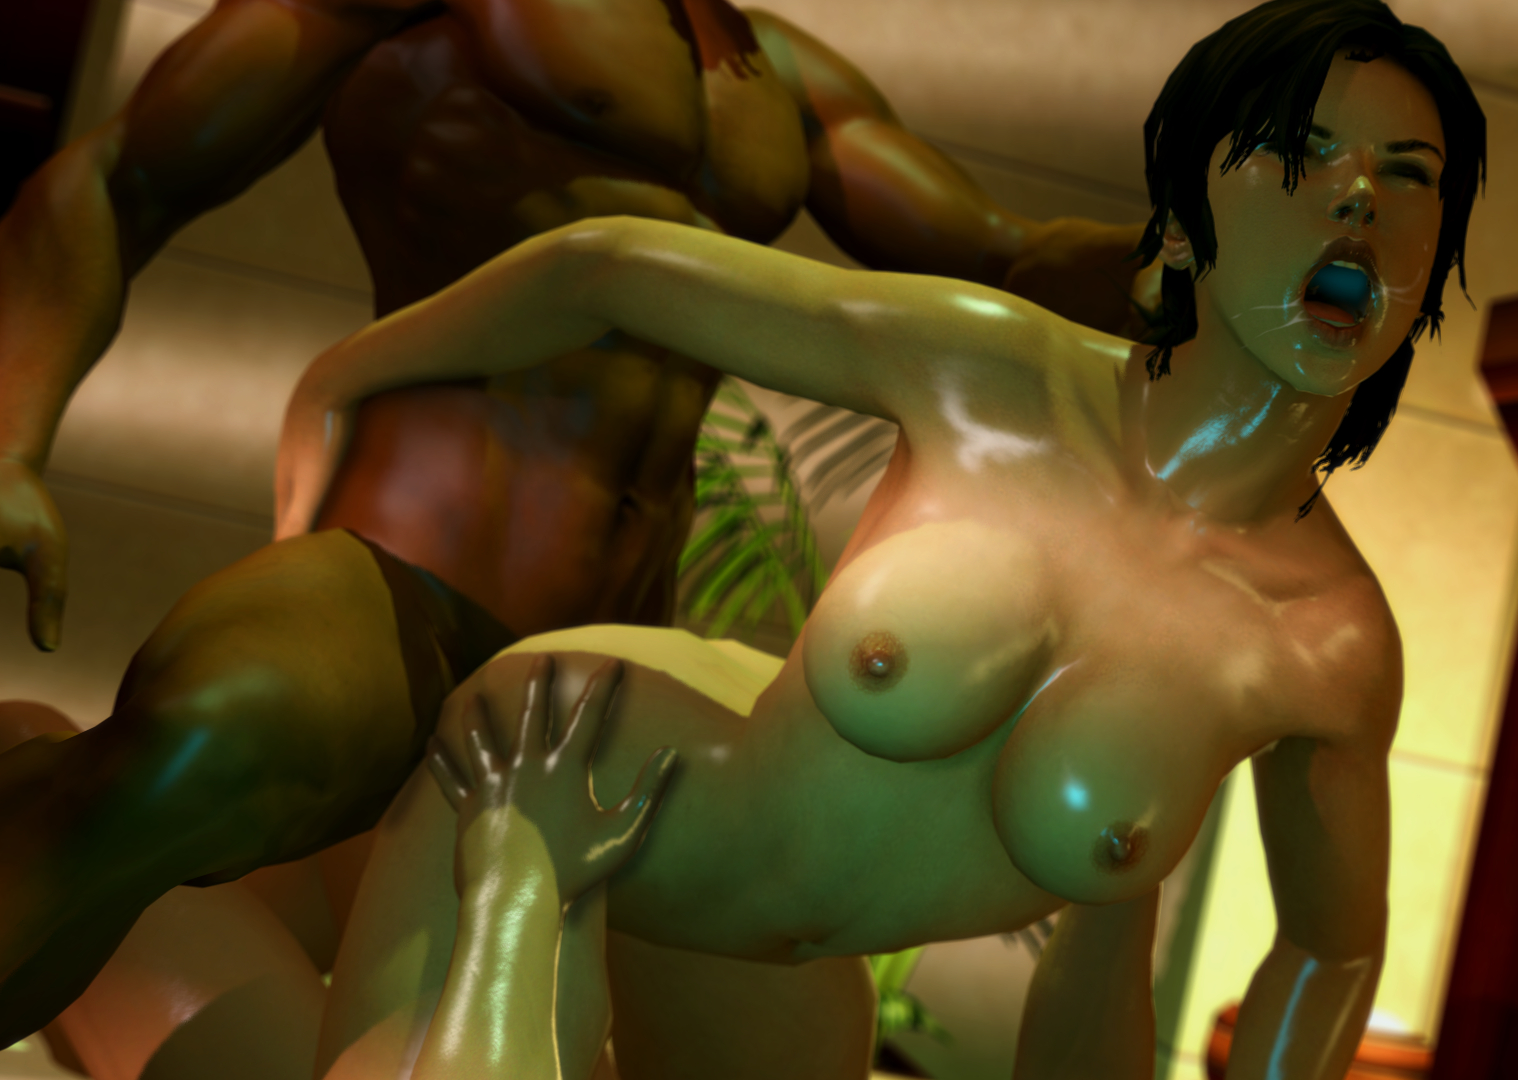 Tomb raider underworld nude animation softcore picture